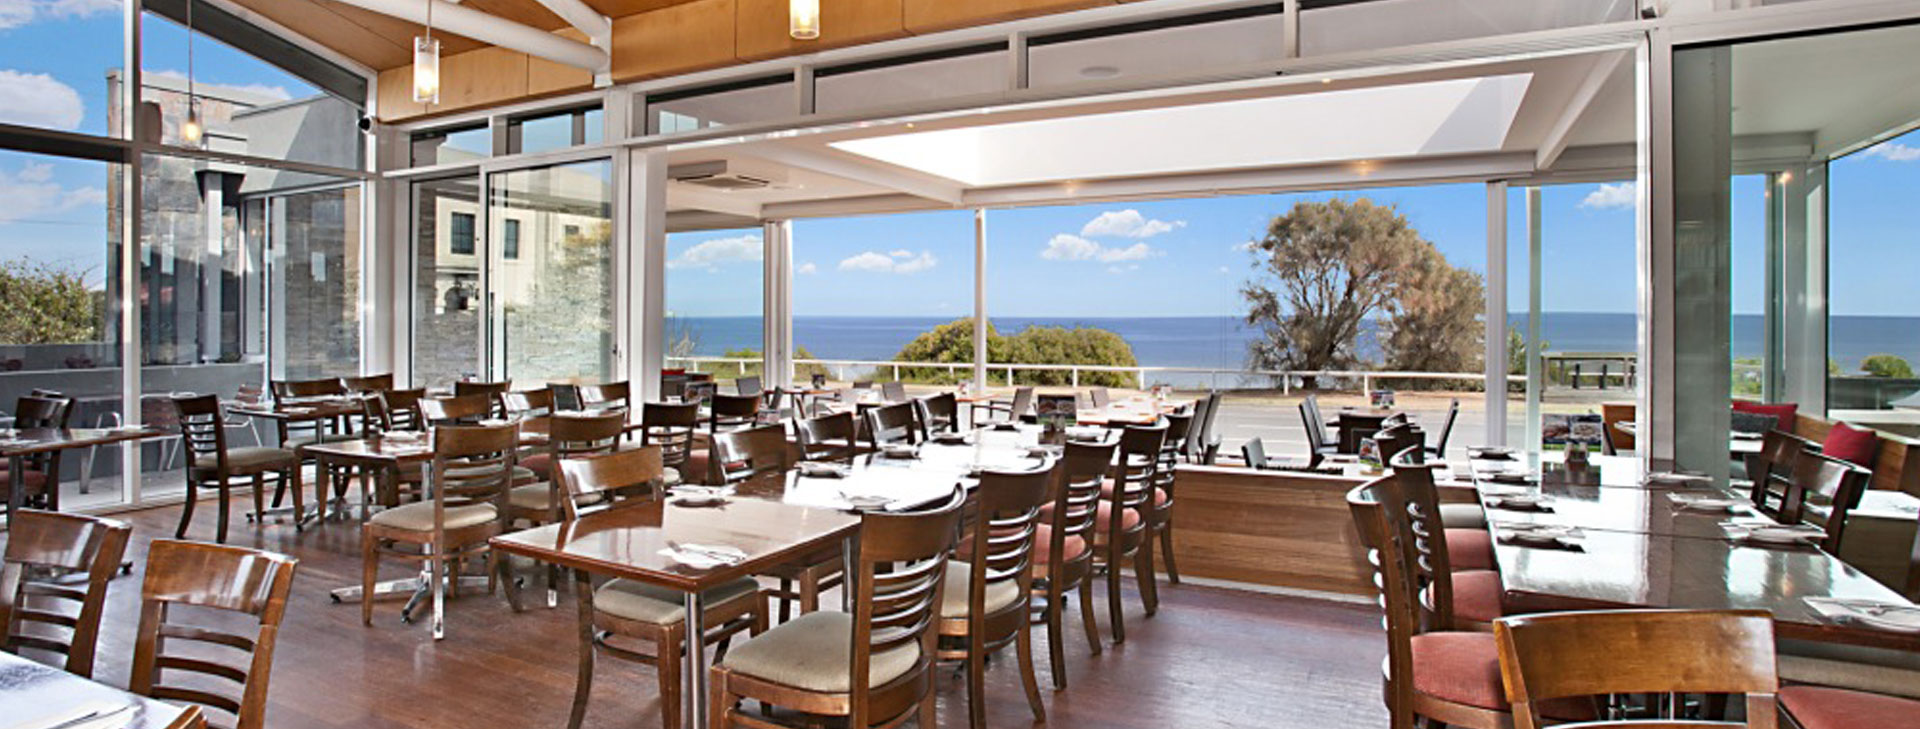 Kirks on the esplanade mornington dining